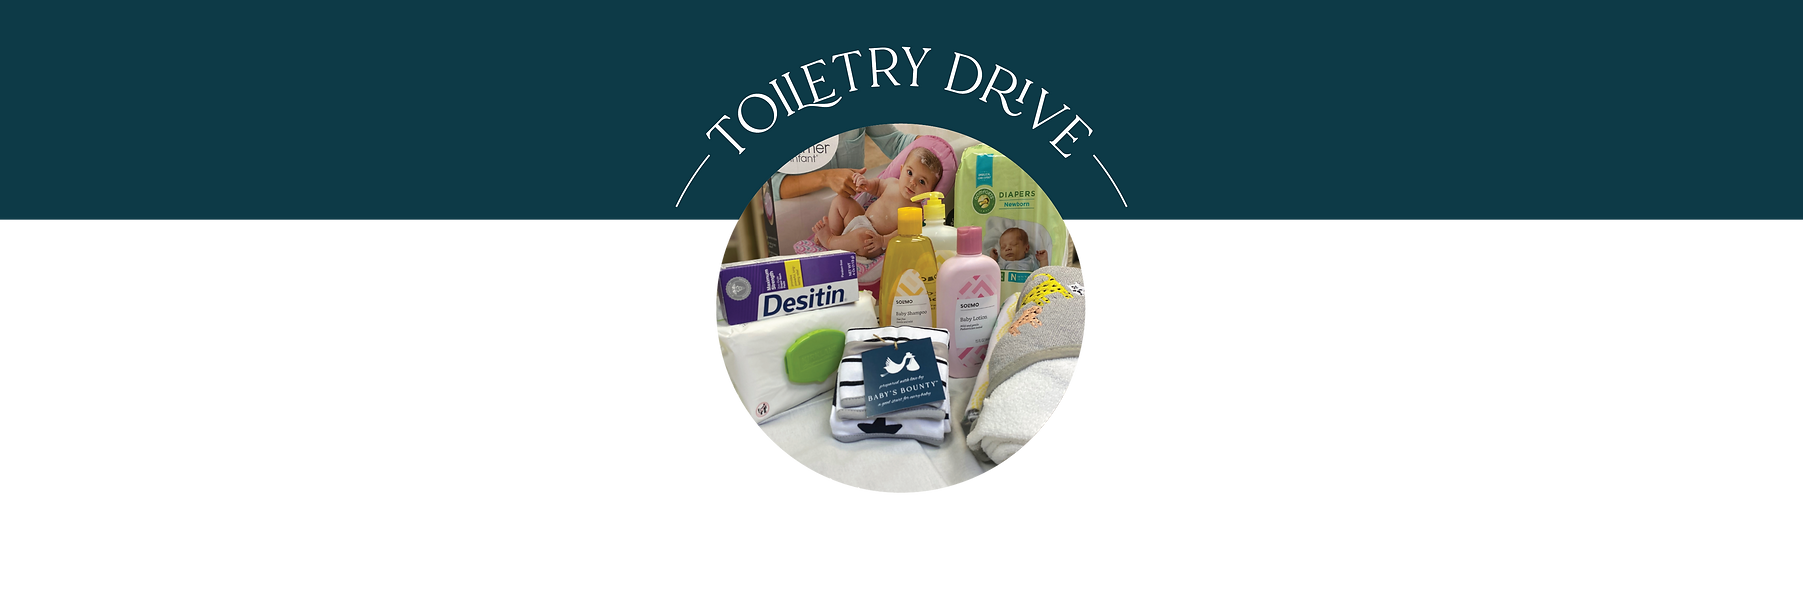 Toiletry Drive-01.png